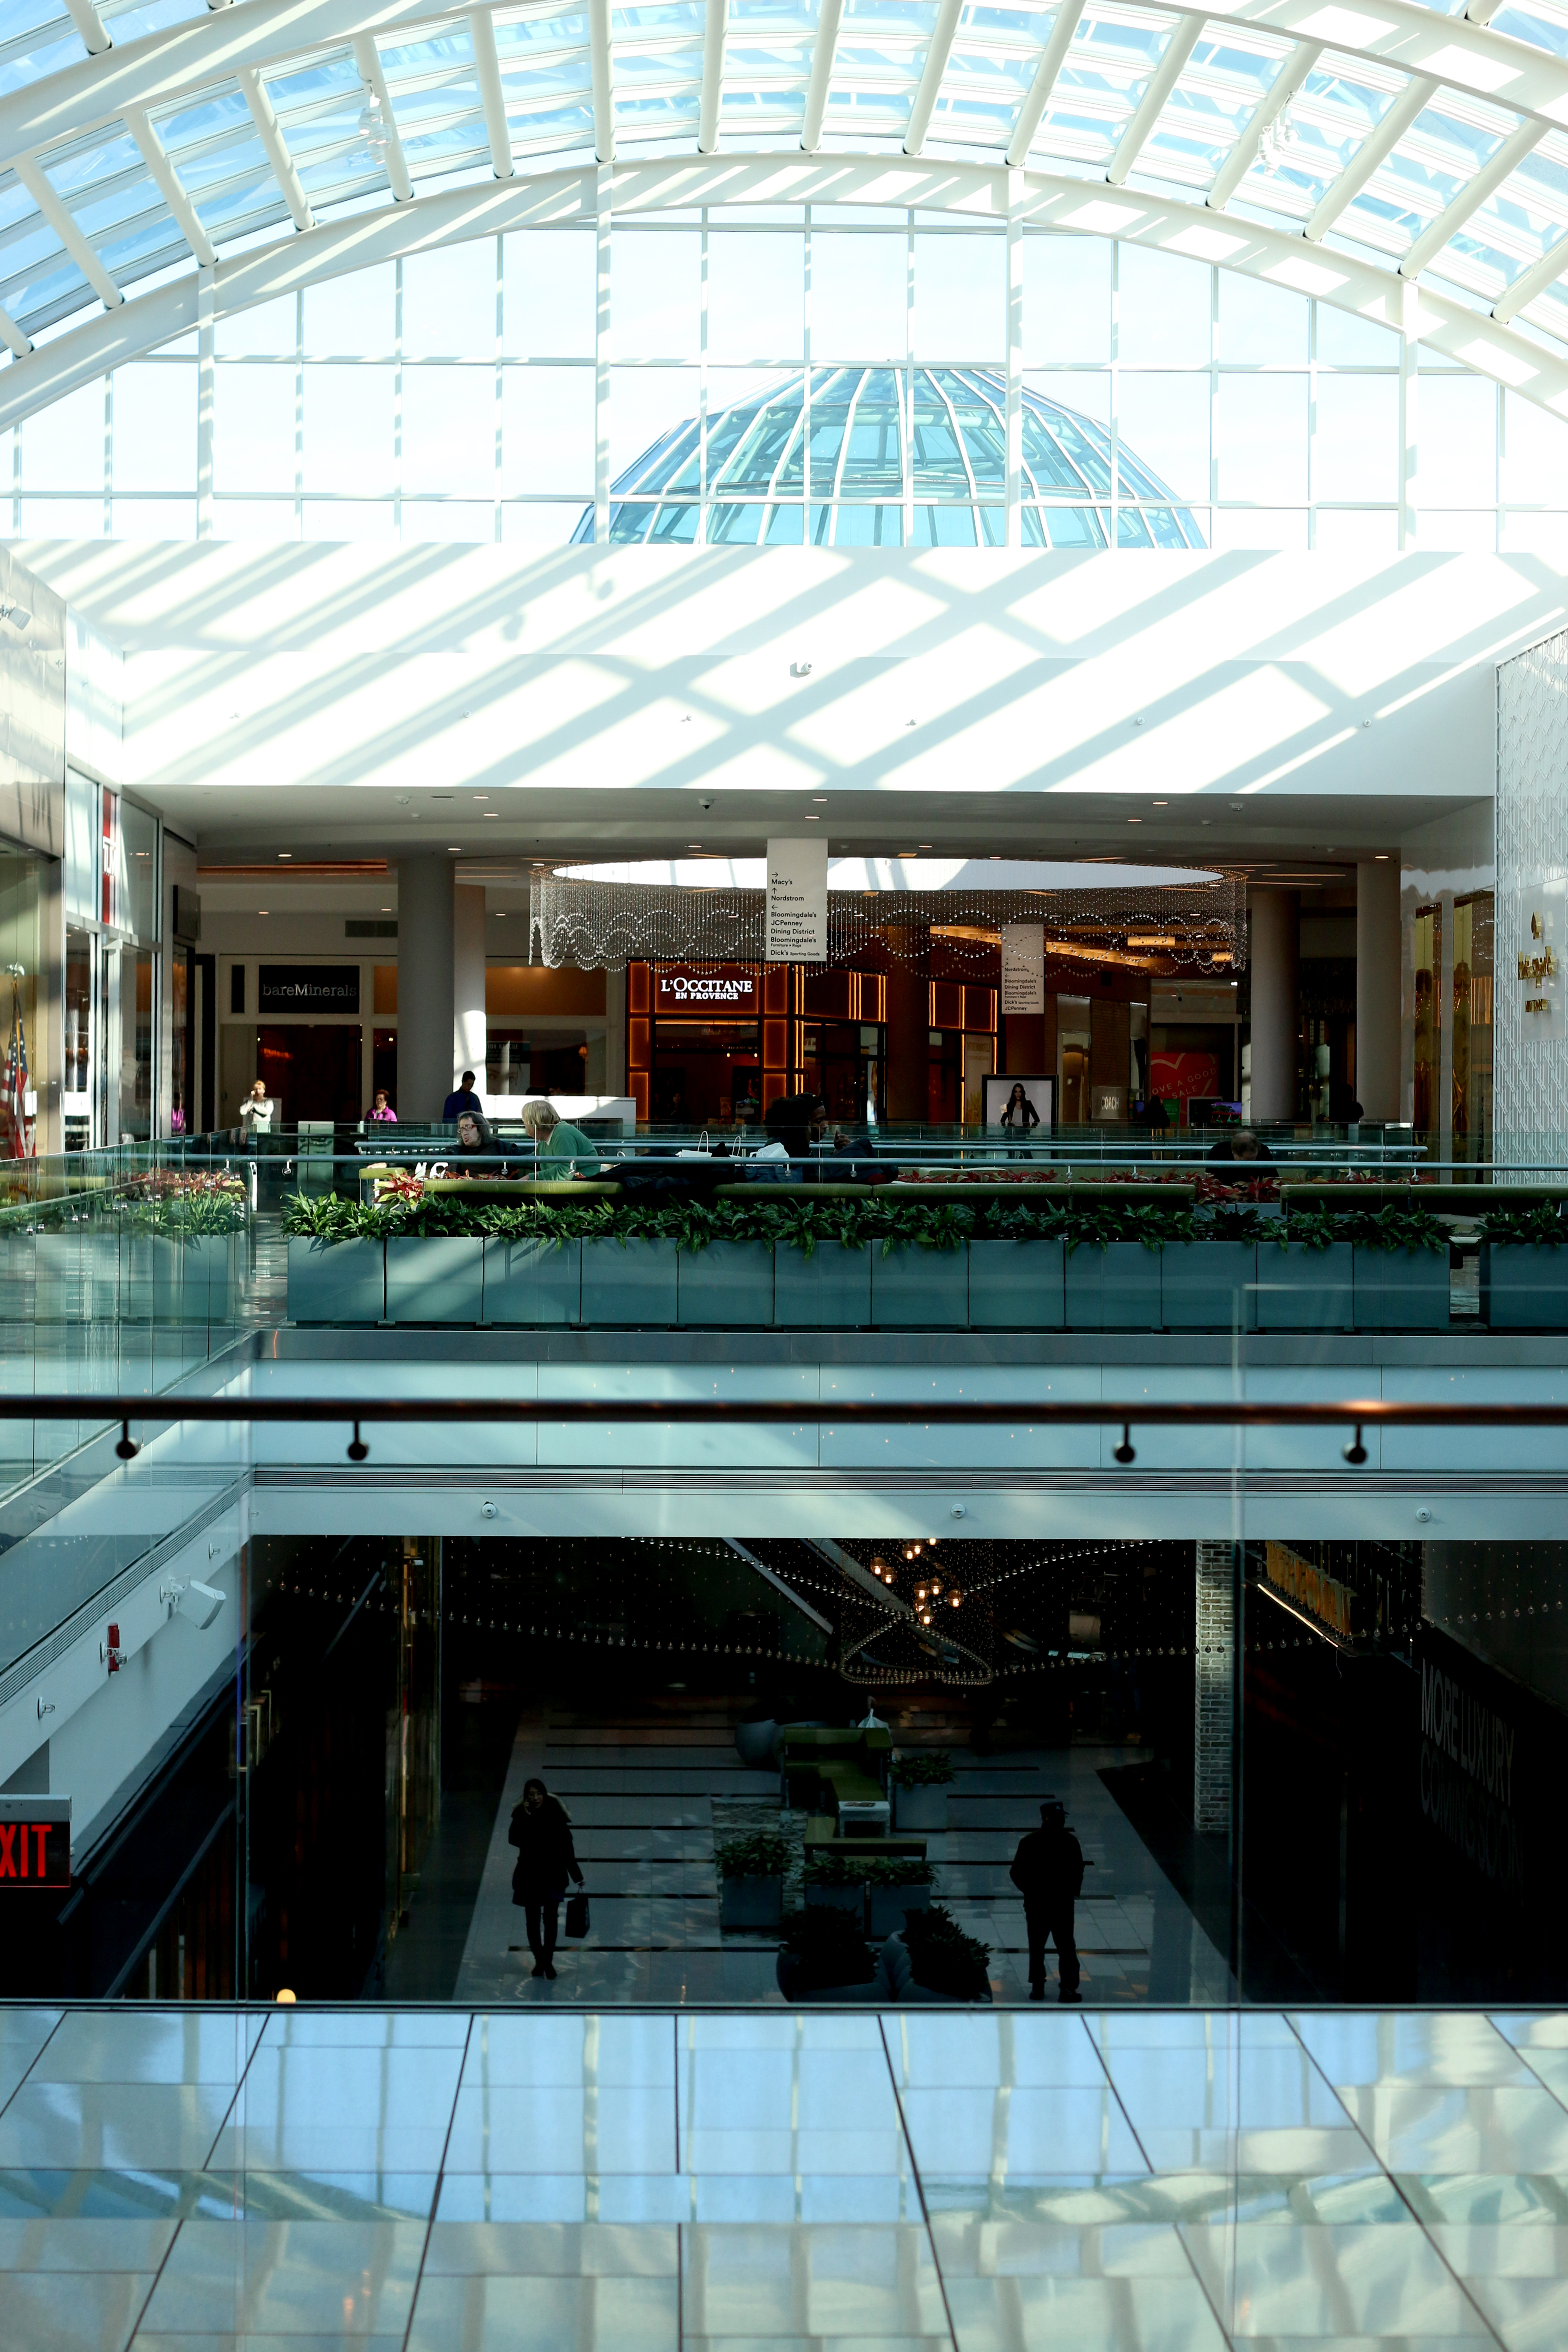 ROOSEVELT SHOPPING MALL REVIEW